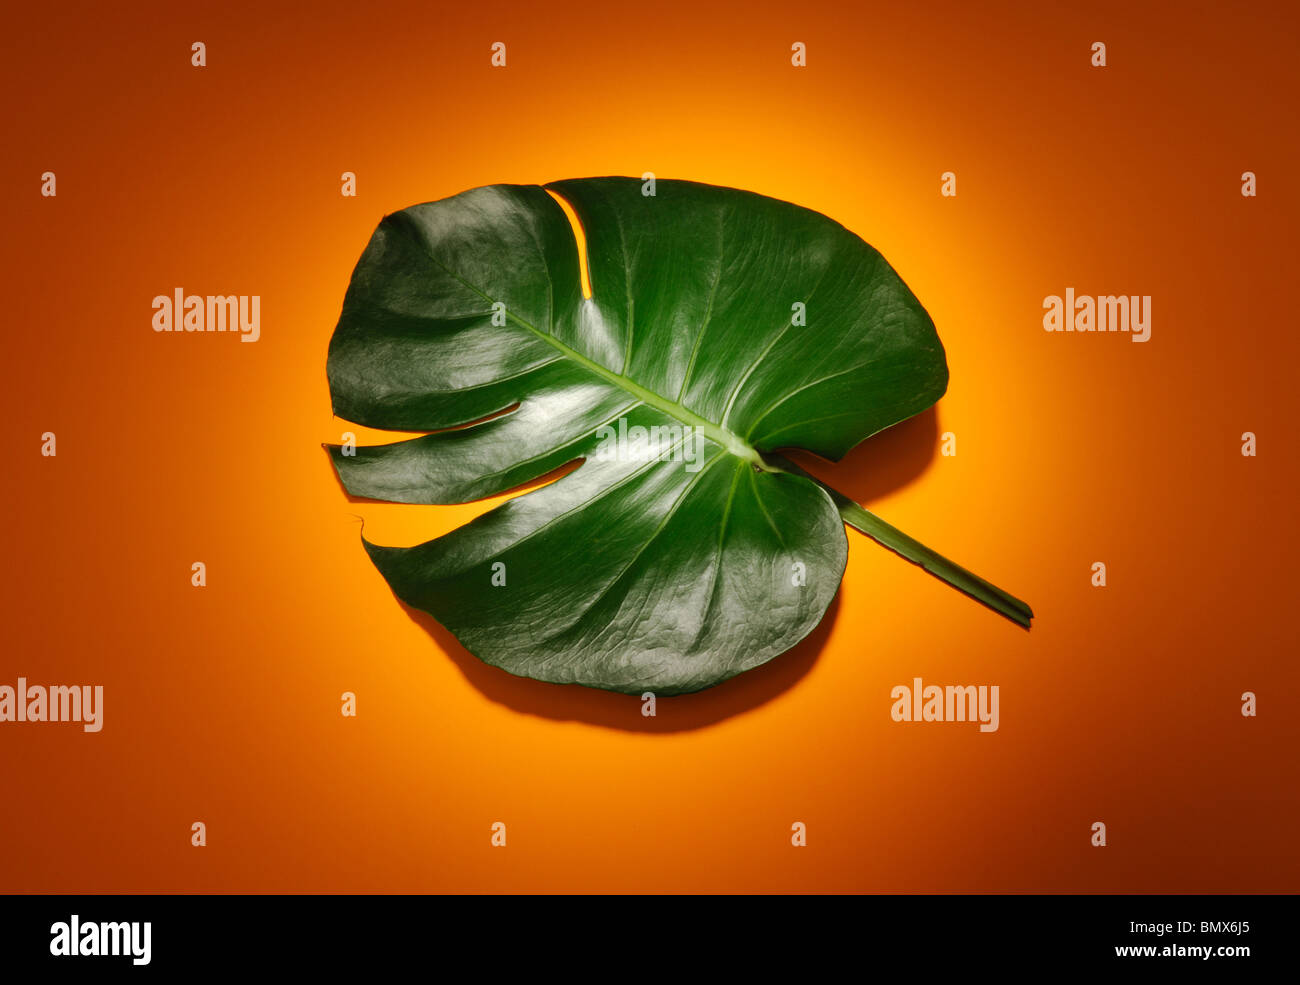 Tropical green plant leaf and stem, orange background - Stock Image